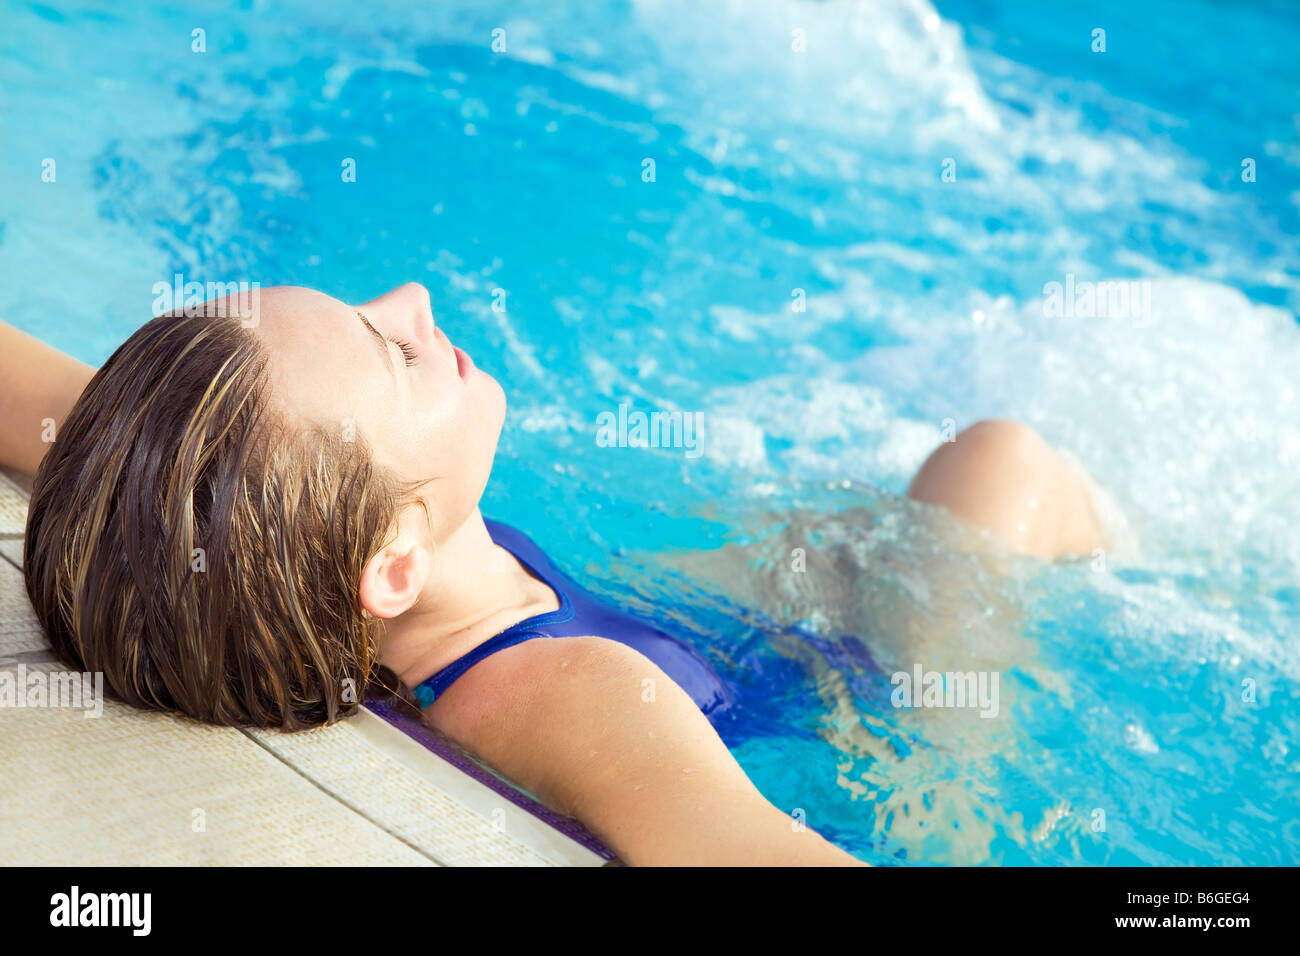 Portrait of young woman sitting in swimming pool Stock Photo